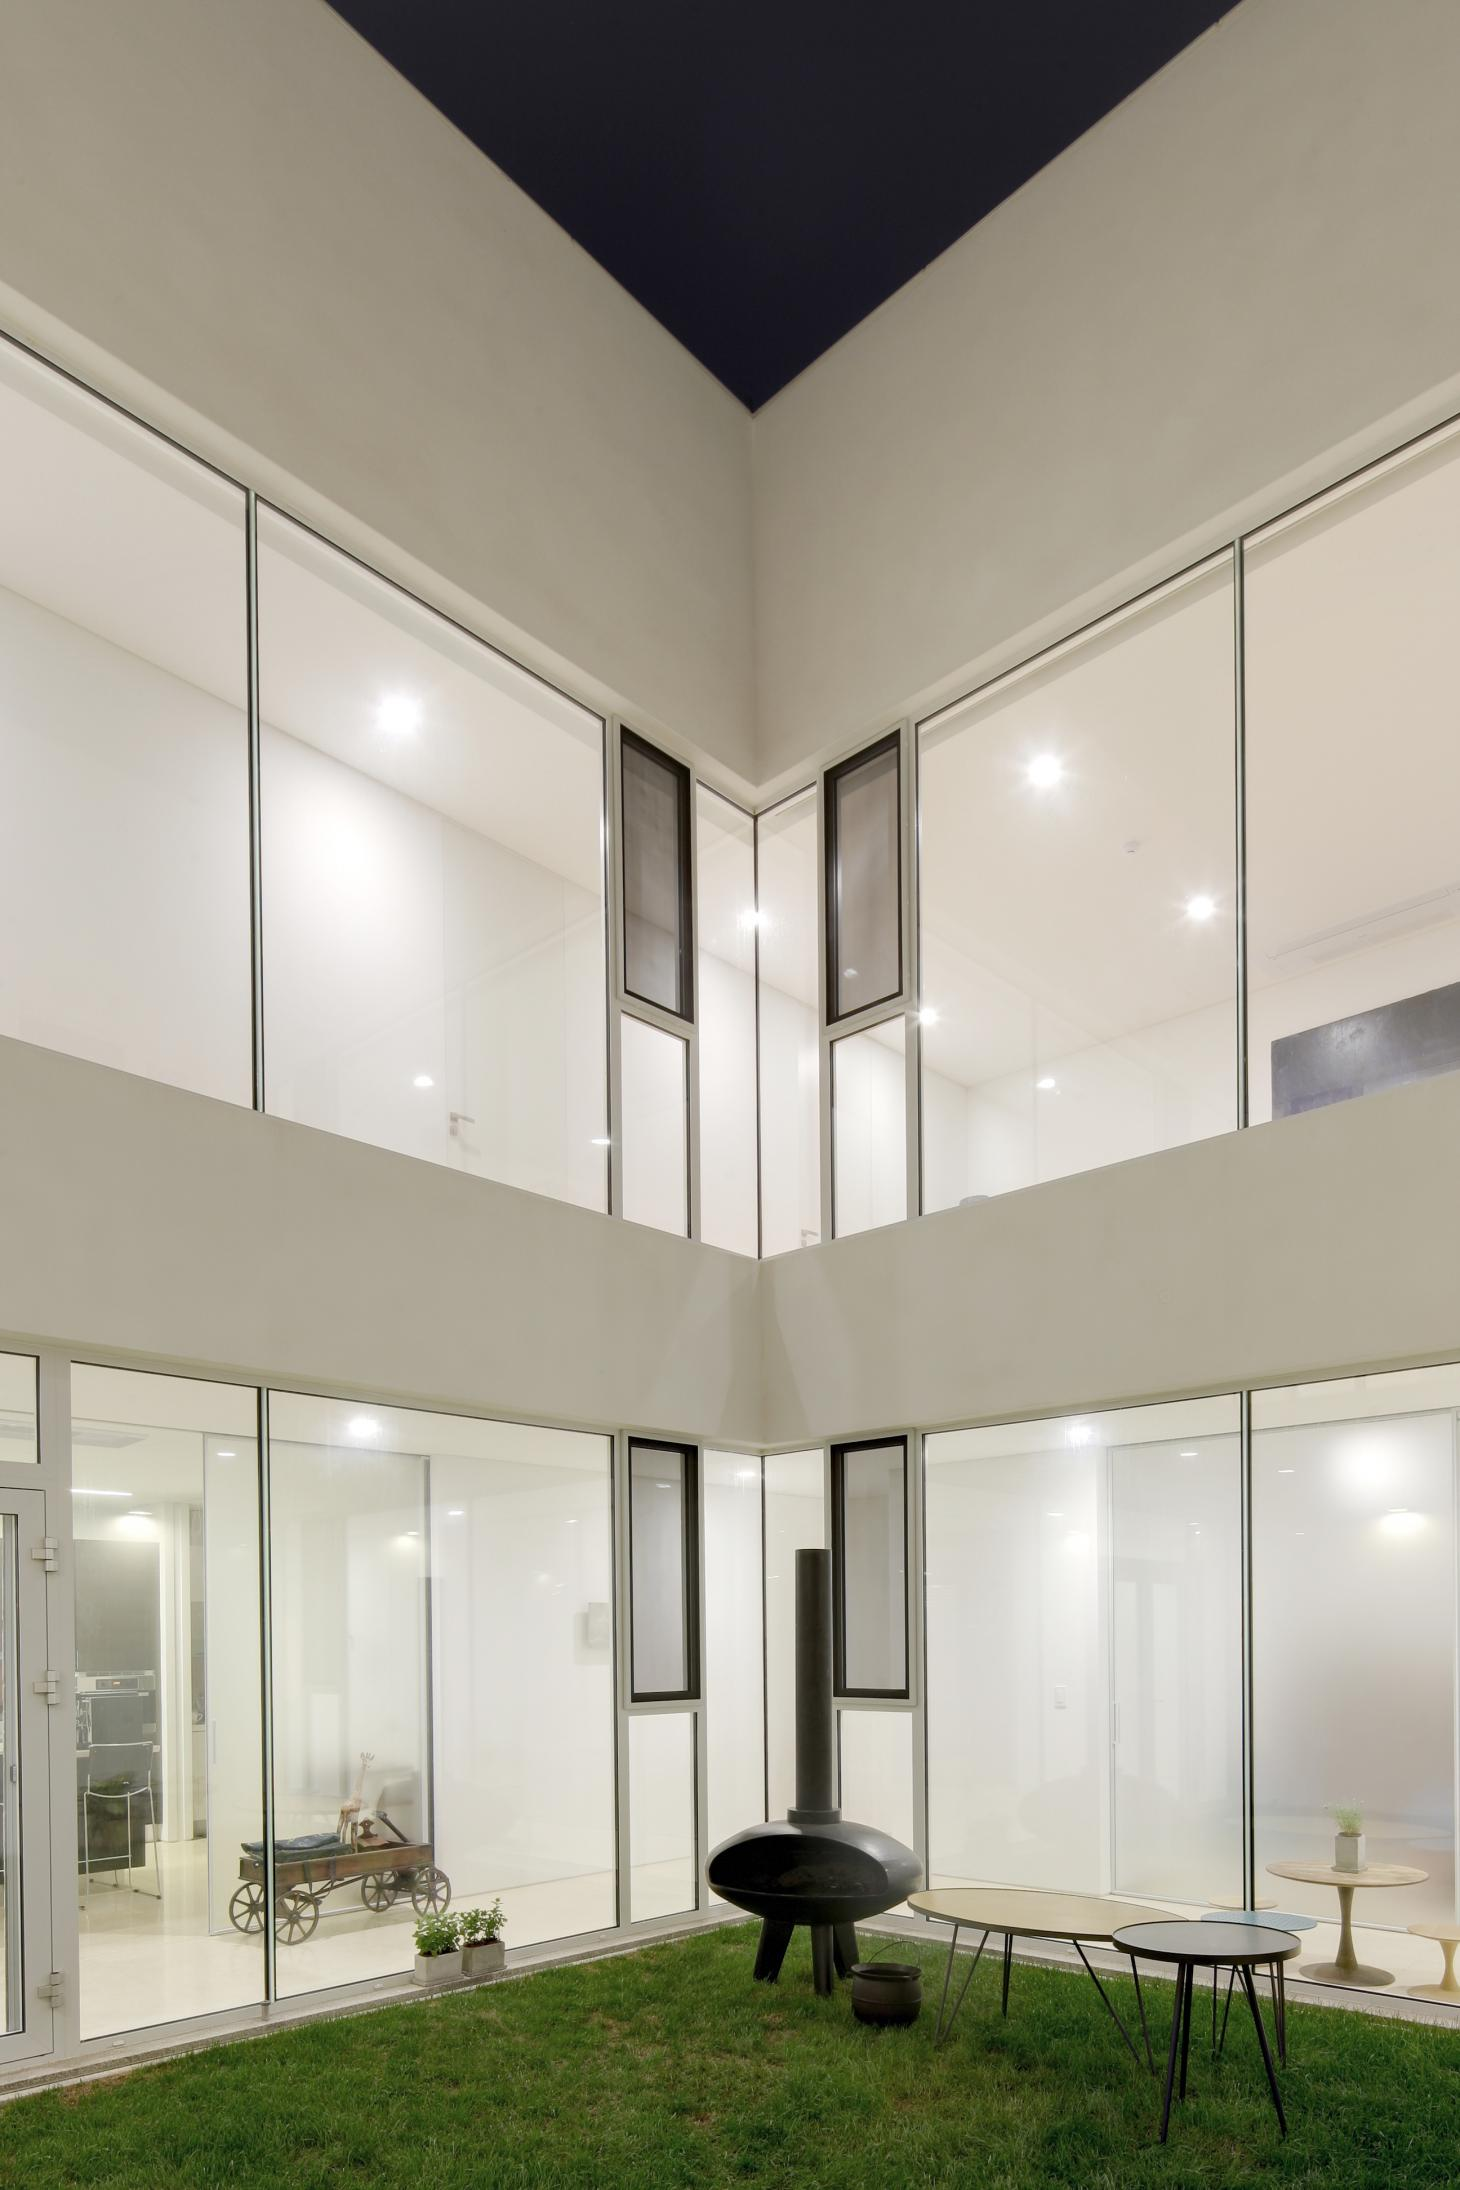 South Korean rounded house's green internal courtyard